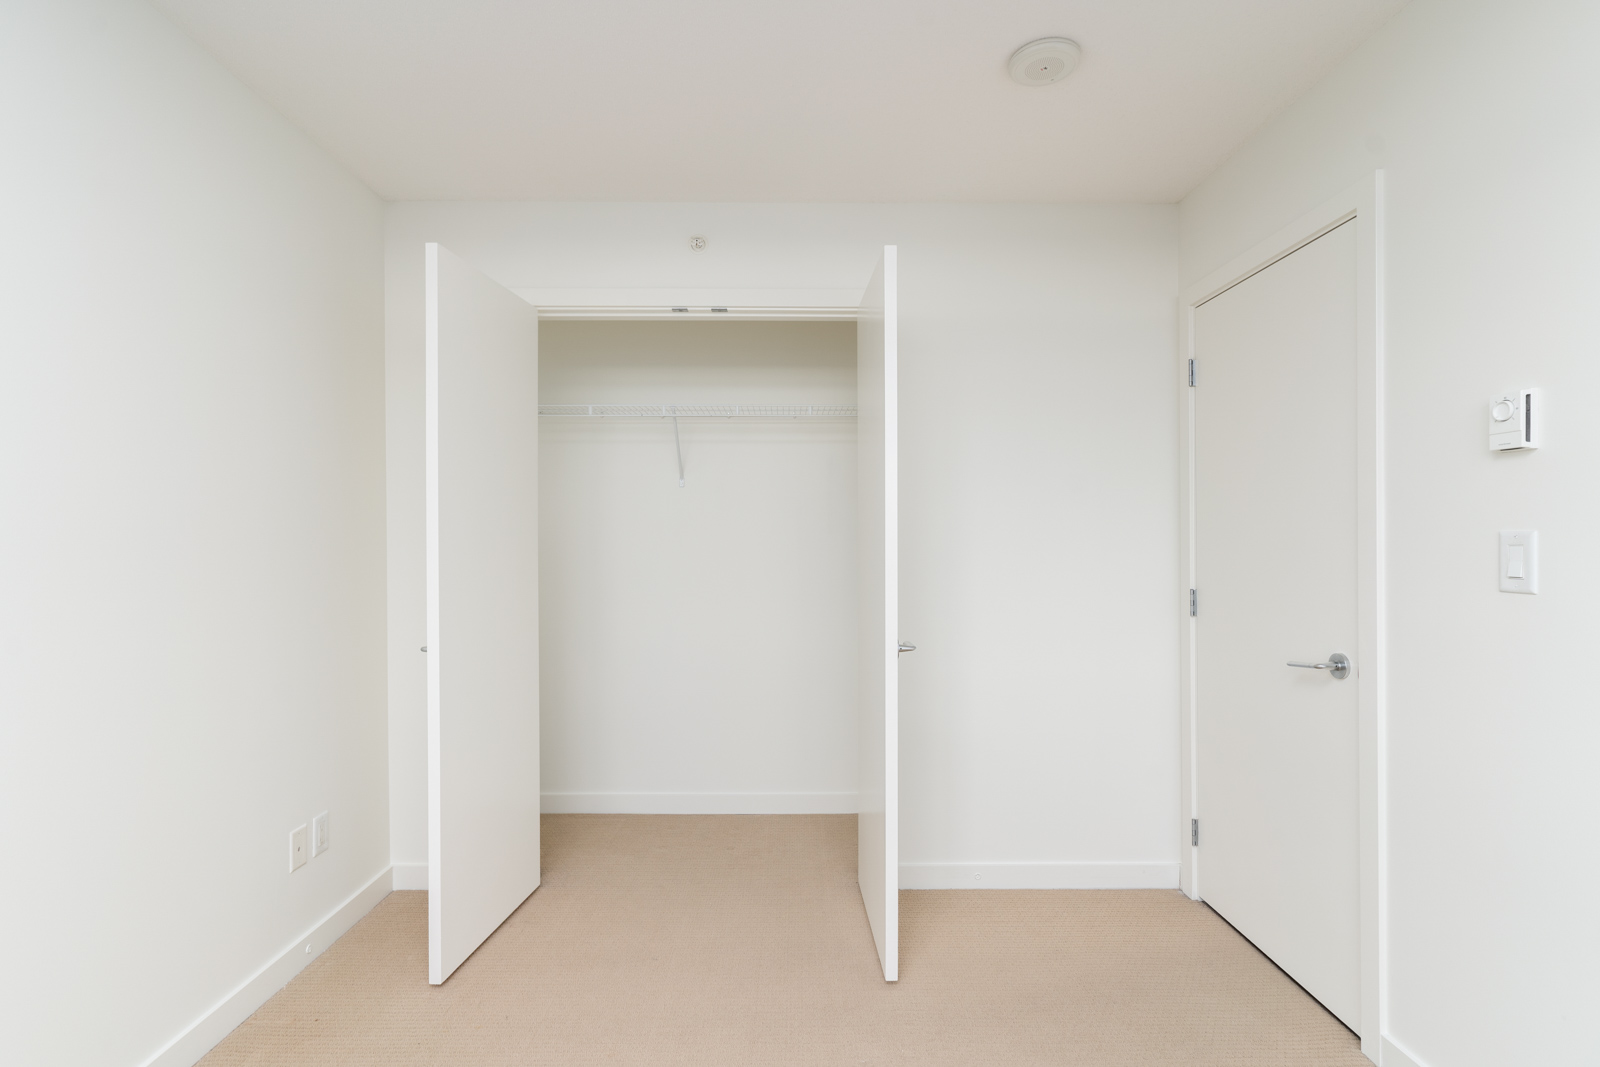 walk-in closet in rental condo managed by Birds Nest Properties